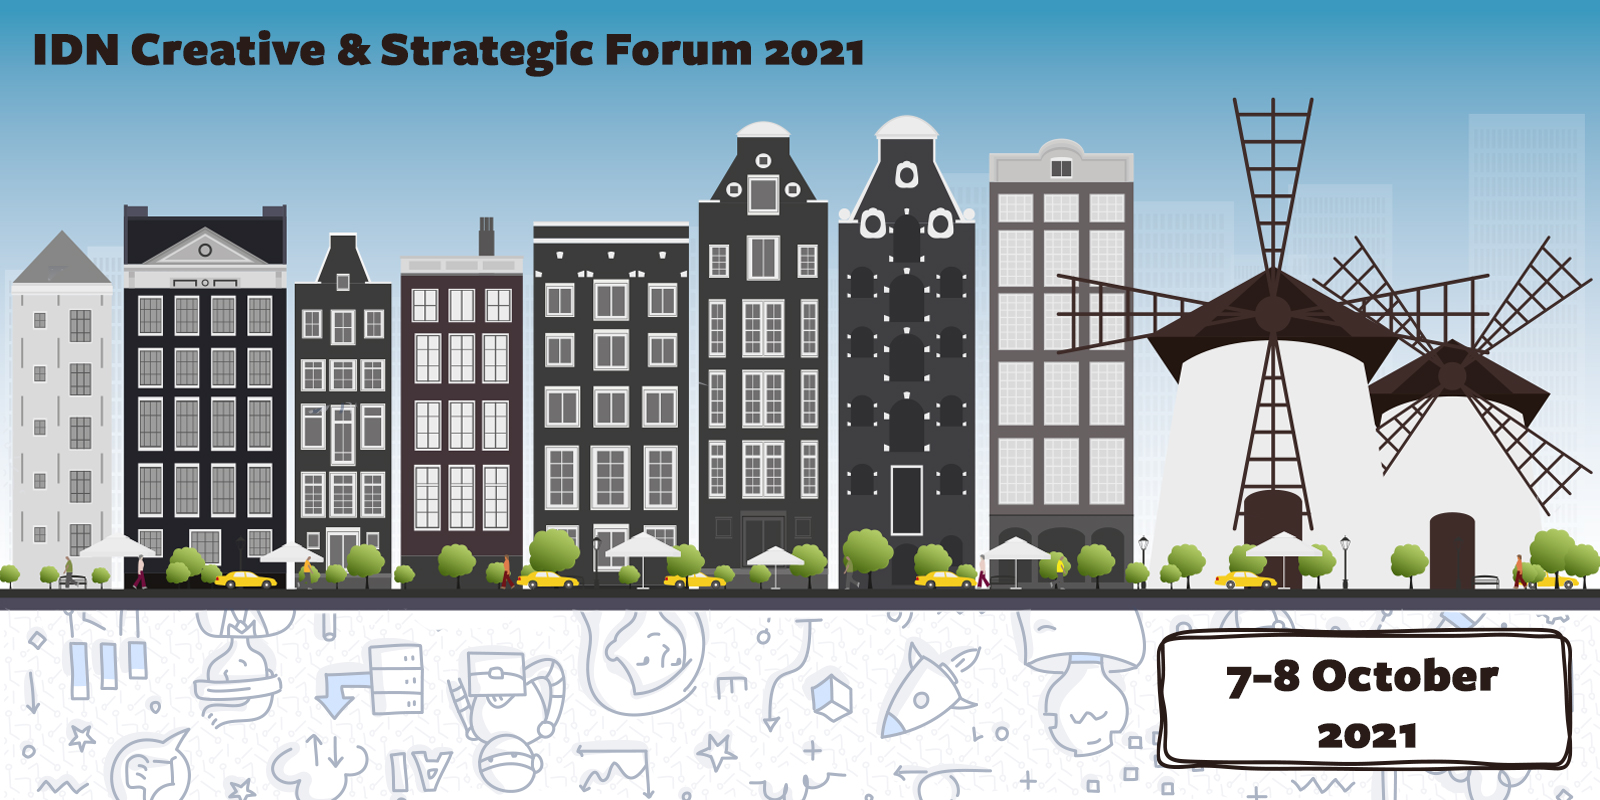 IDN Creative & Strategic Forum 2021 is taking place in Amsterdam